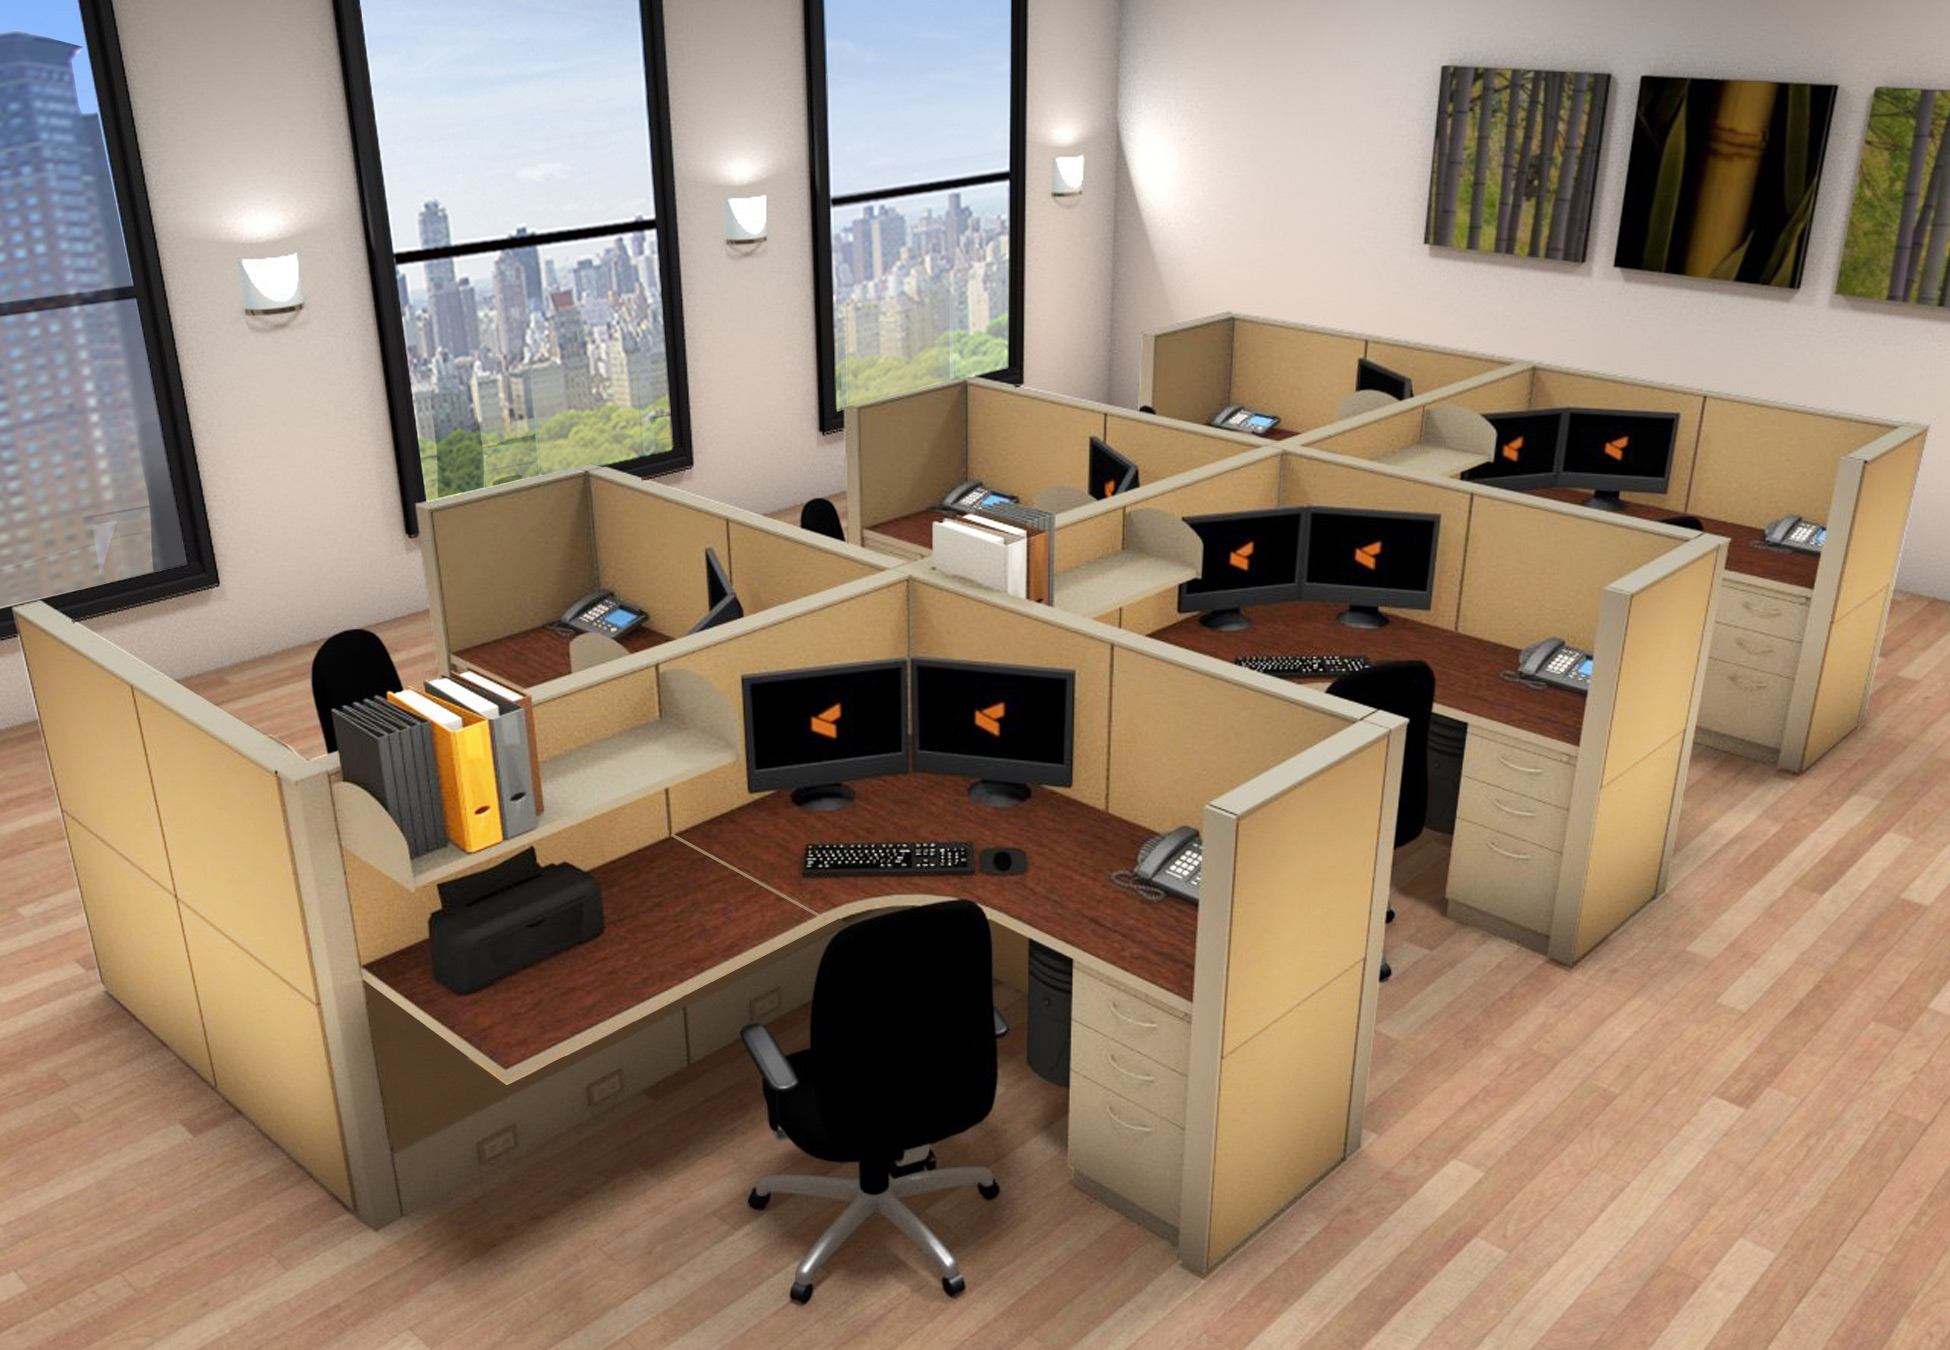 Office Work Stations 5x6 Cubicle Workstations Cubicle Systems